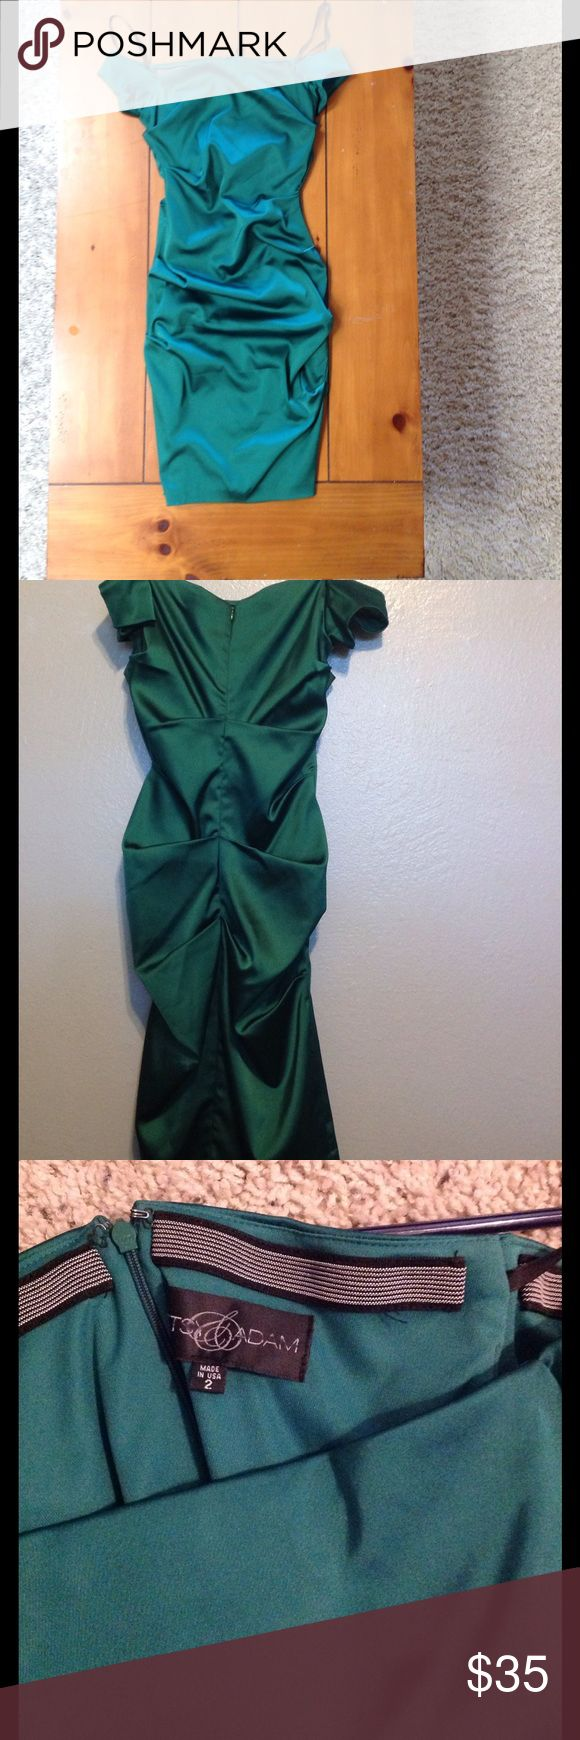 Gorgeous Emerald Green Cocktail Dress This is a beautiful formal occasion dress. I wore it once, and it was purchased from a Nordstrom outlet a few years ago. Feel free to make an offer! Nordstrom Dresses Mini